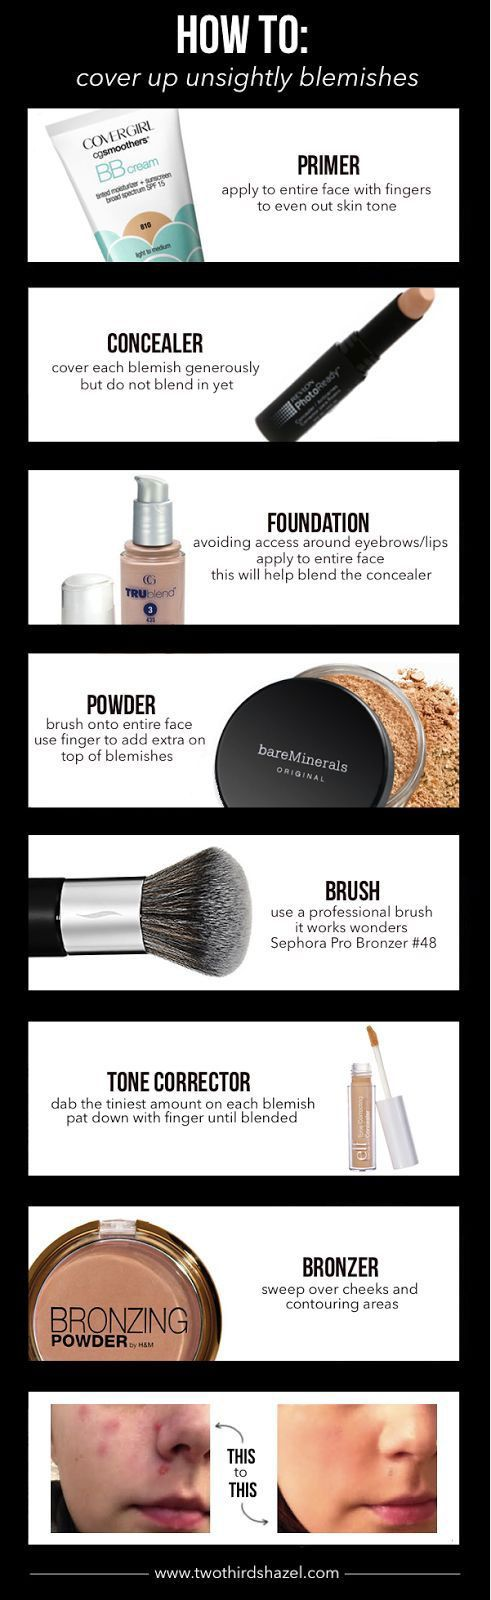 18 Acne Tips and Tricks To Get Rid Of and Cover Up Pimples | Gurl.com